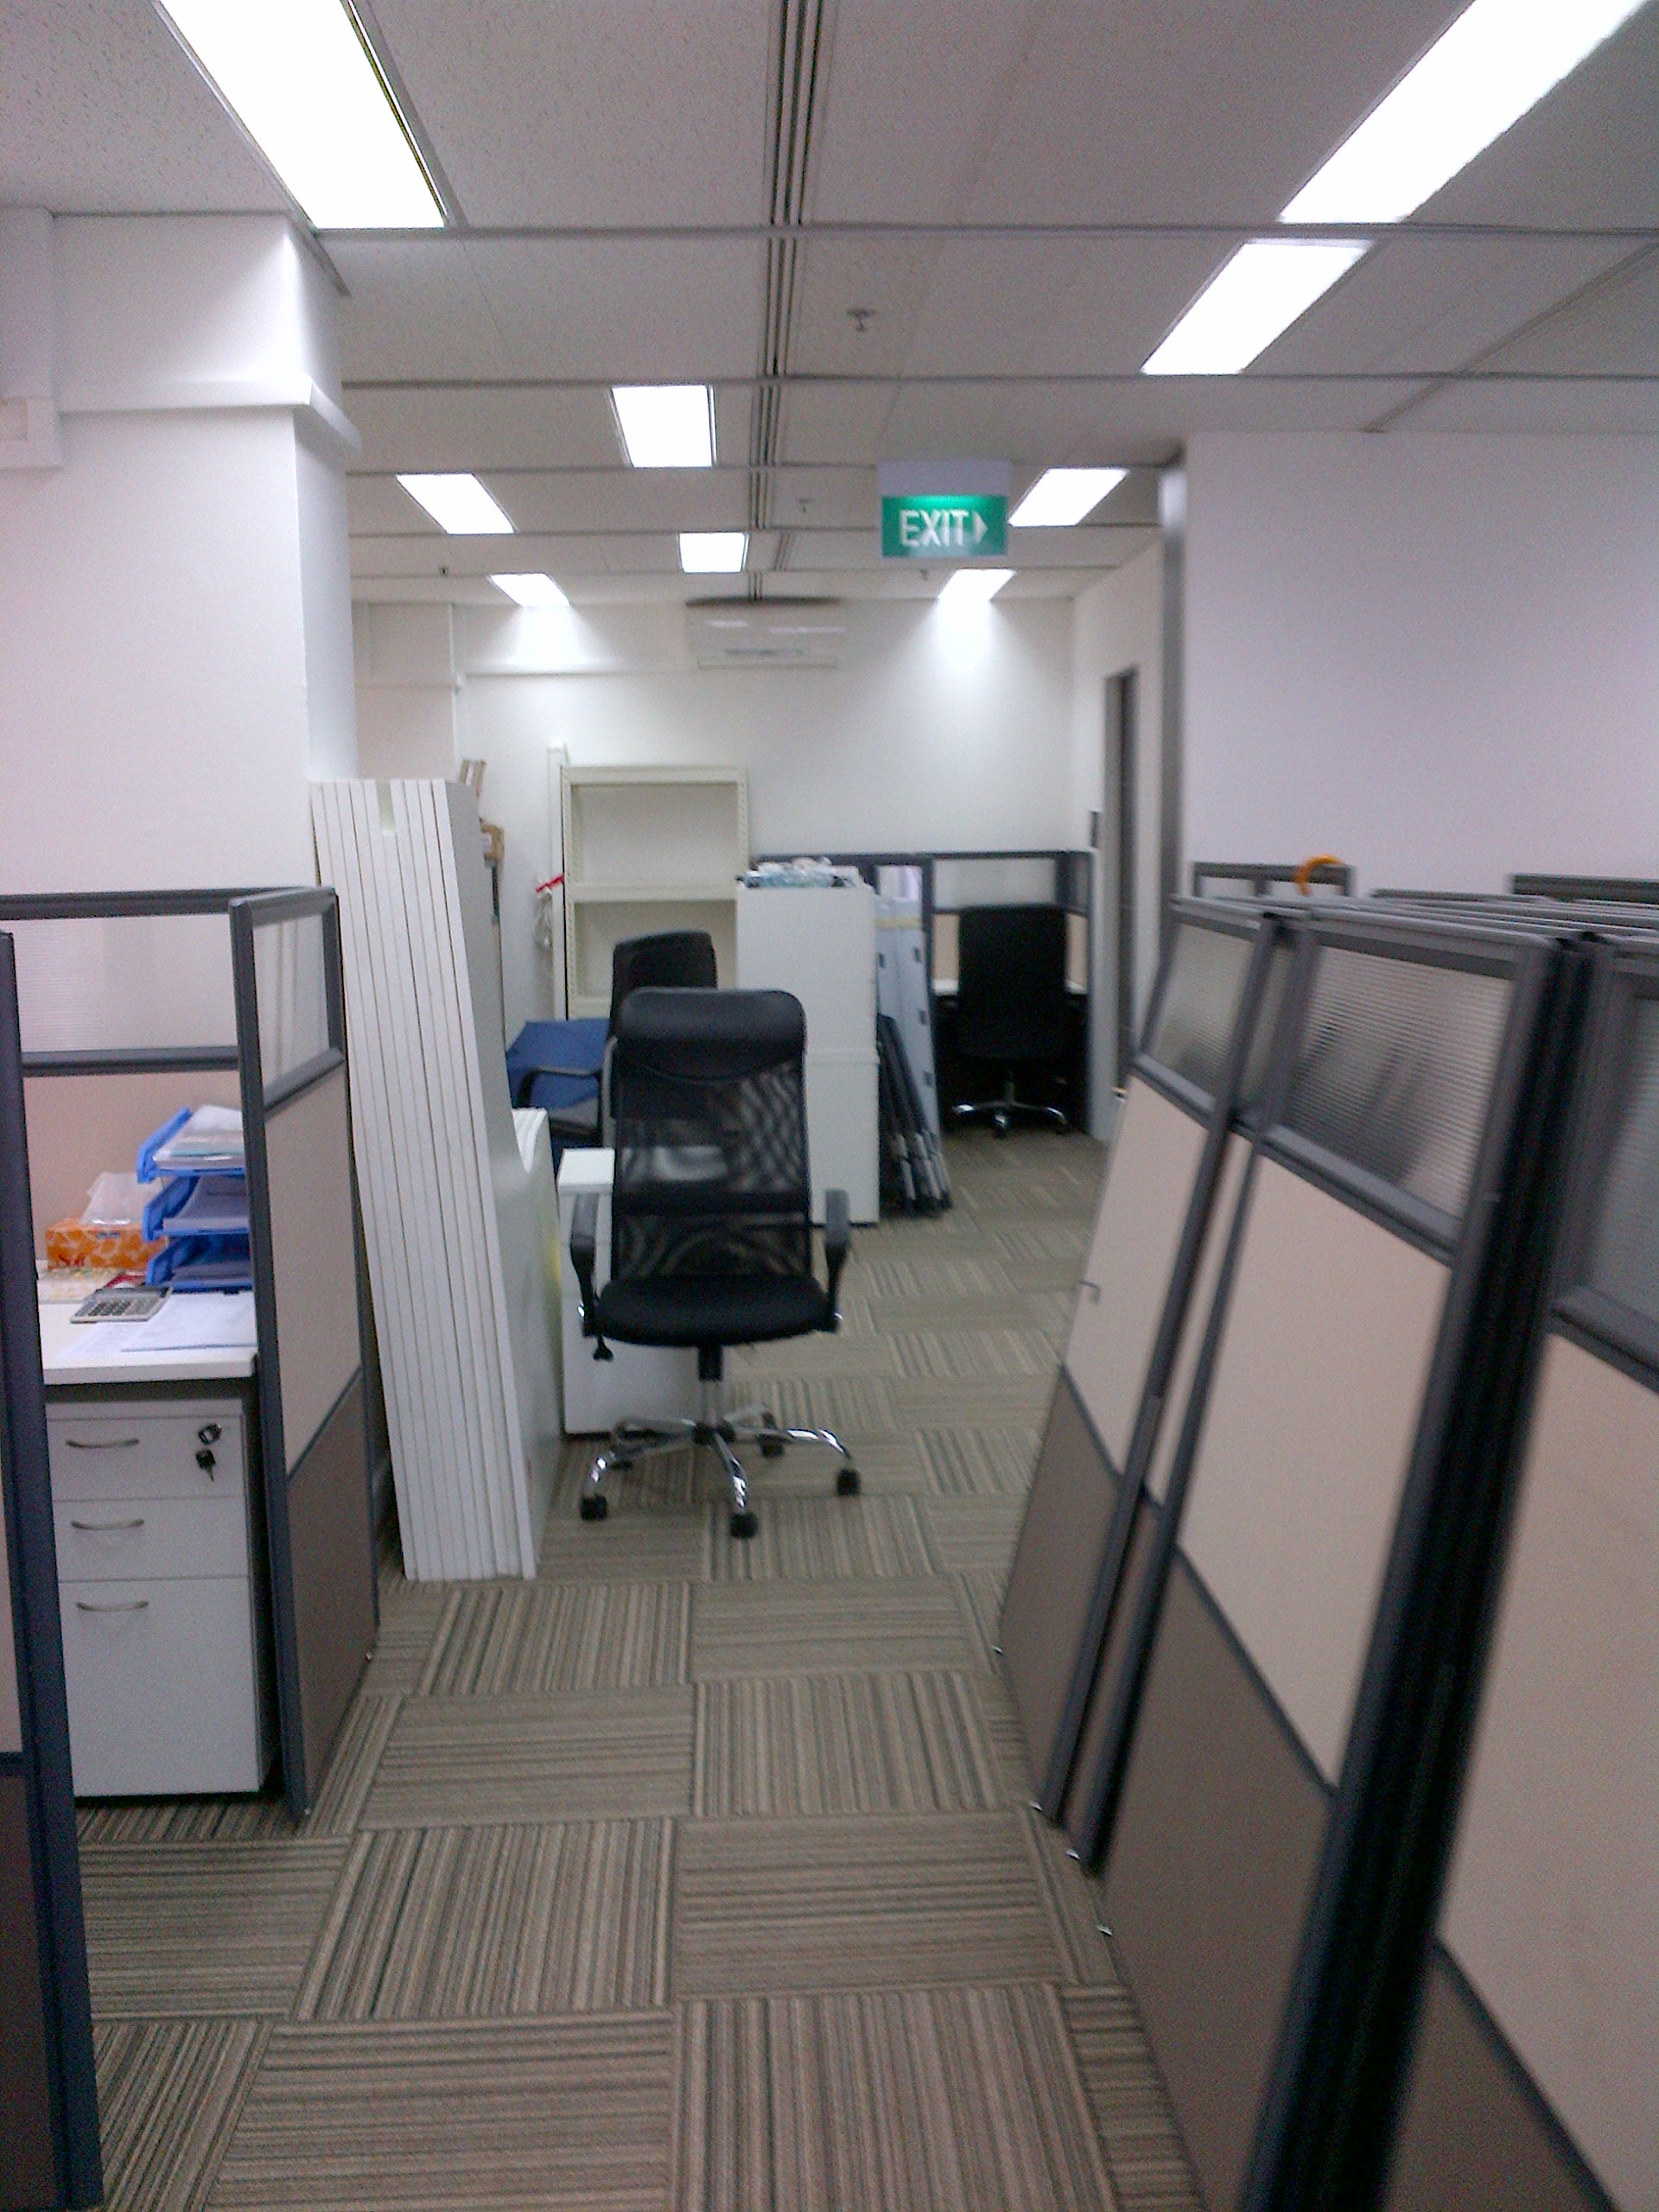 Office renovation at Clifford Centre - 2